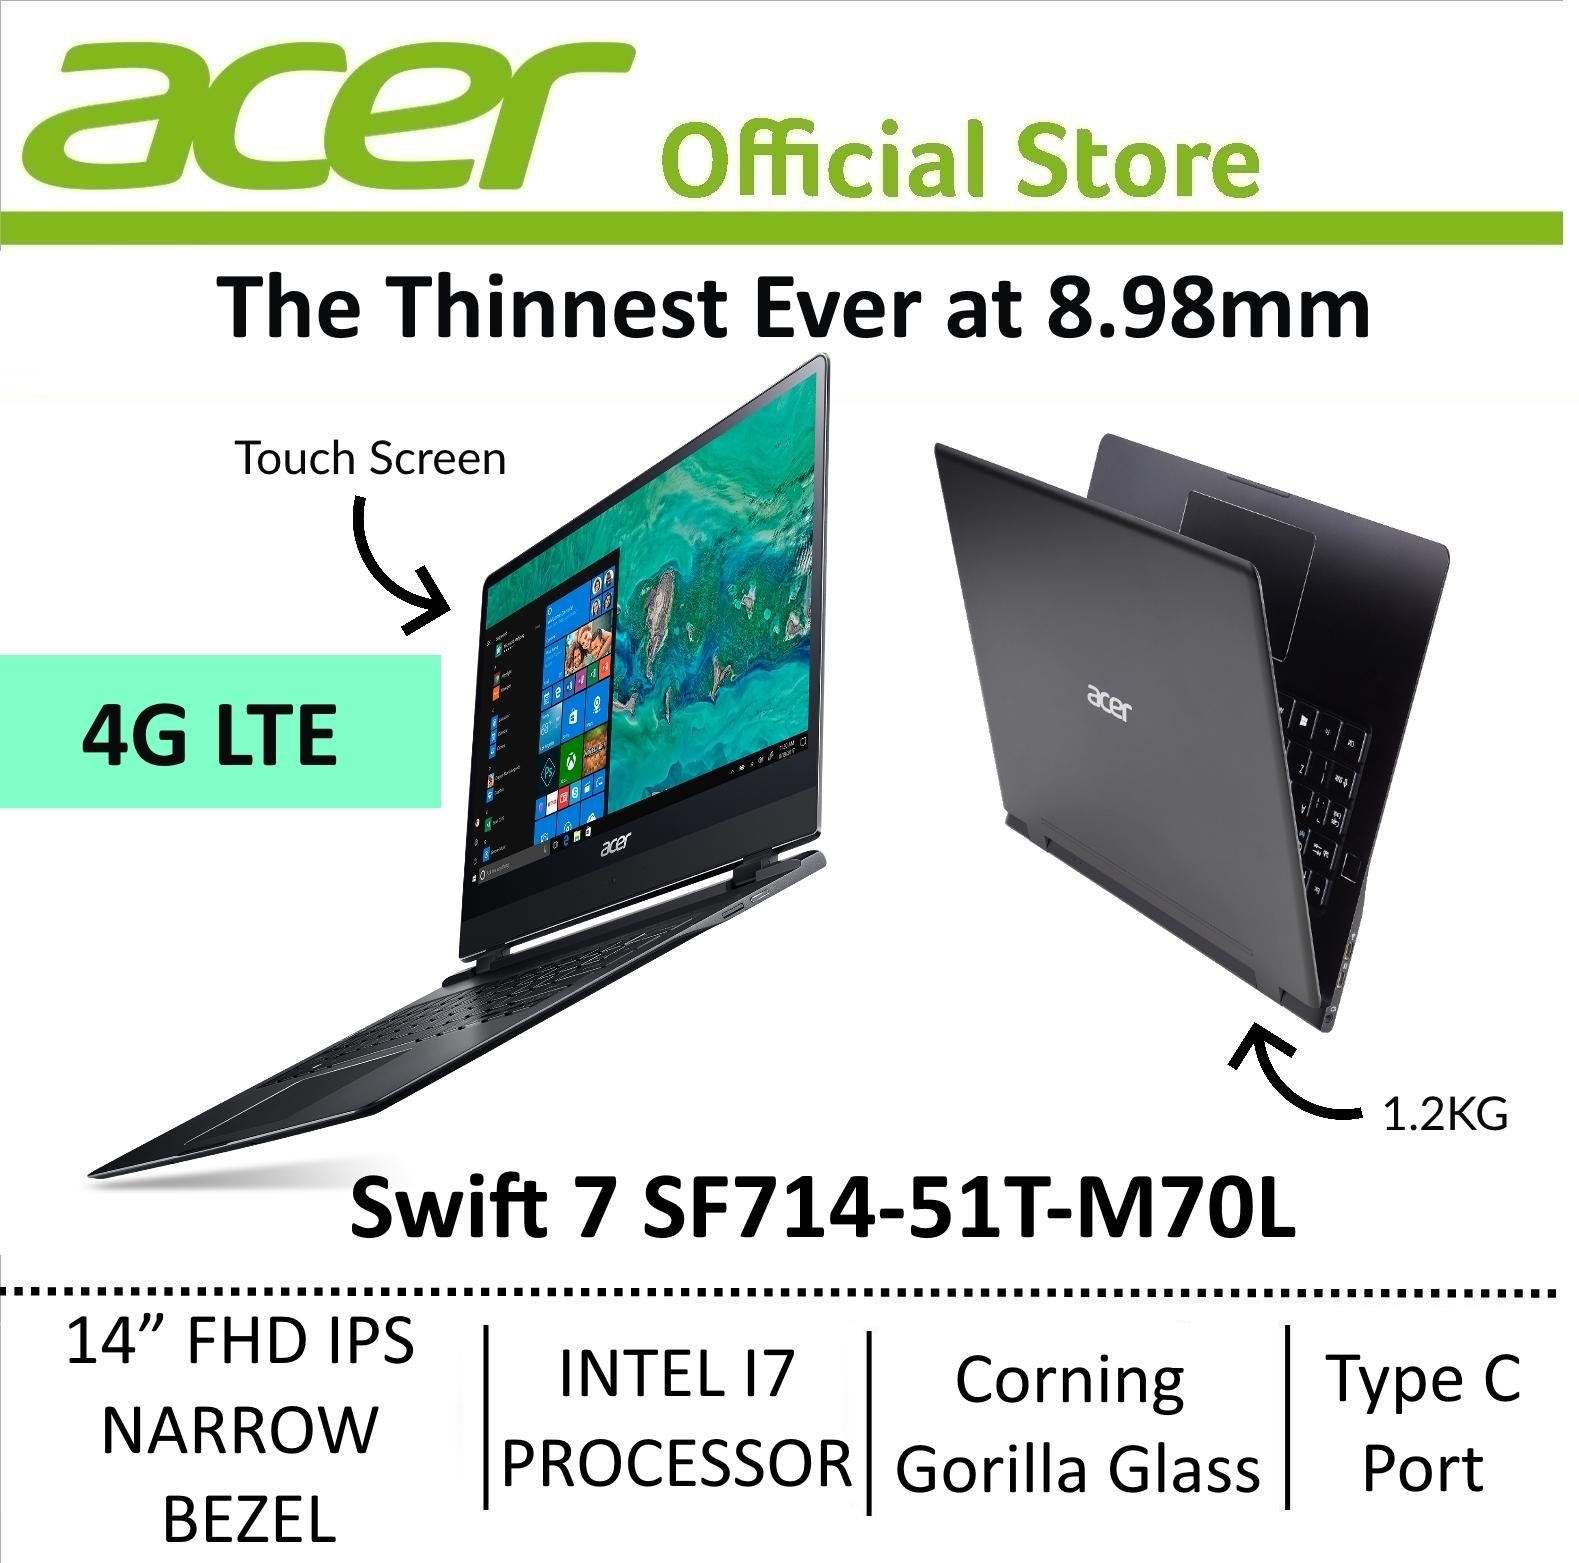 Acer Swift 7 SF714-51T-M70L The Thinnest Laptop with LTE 4G